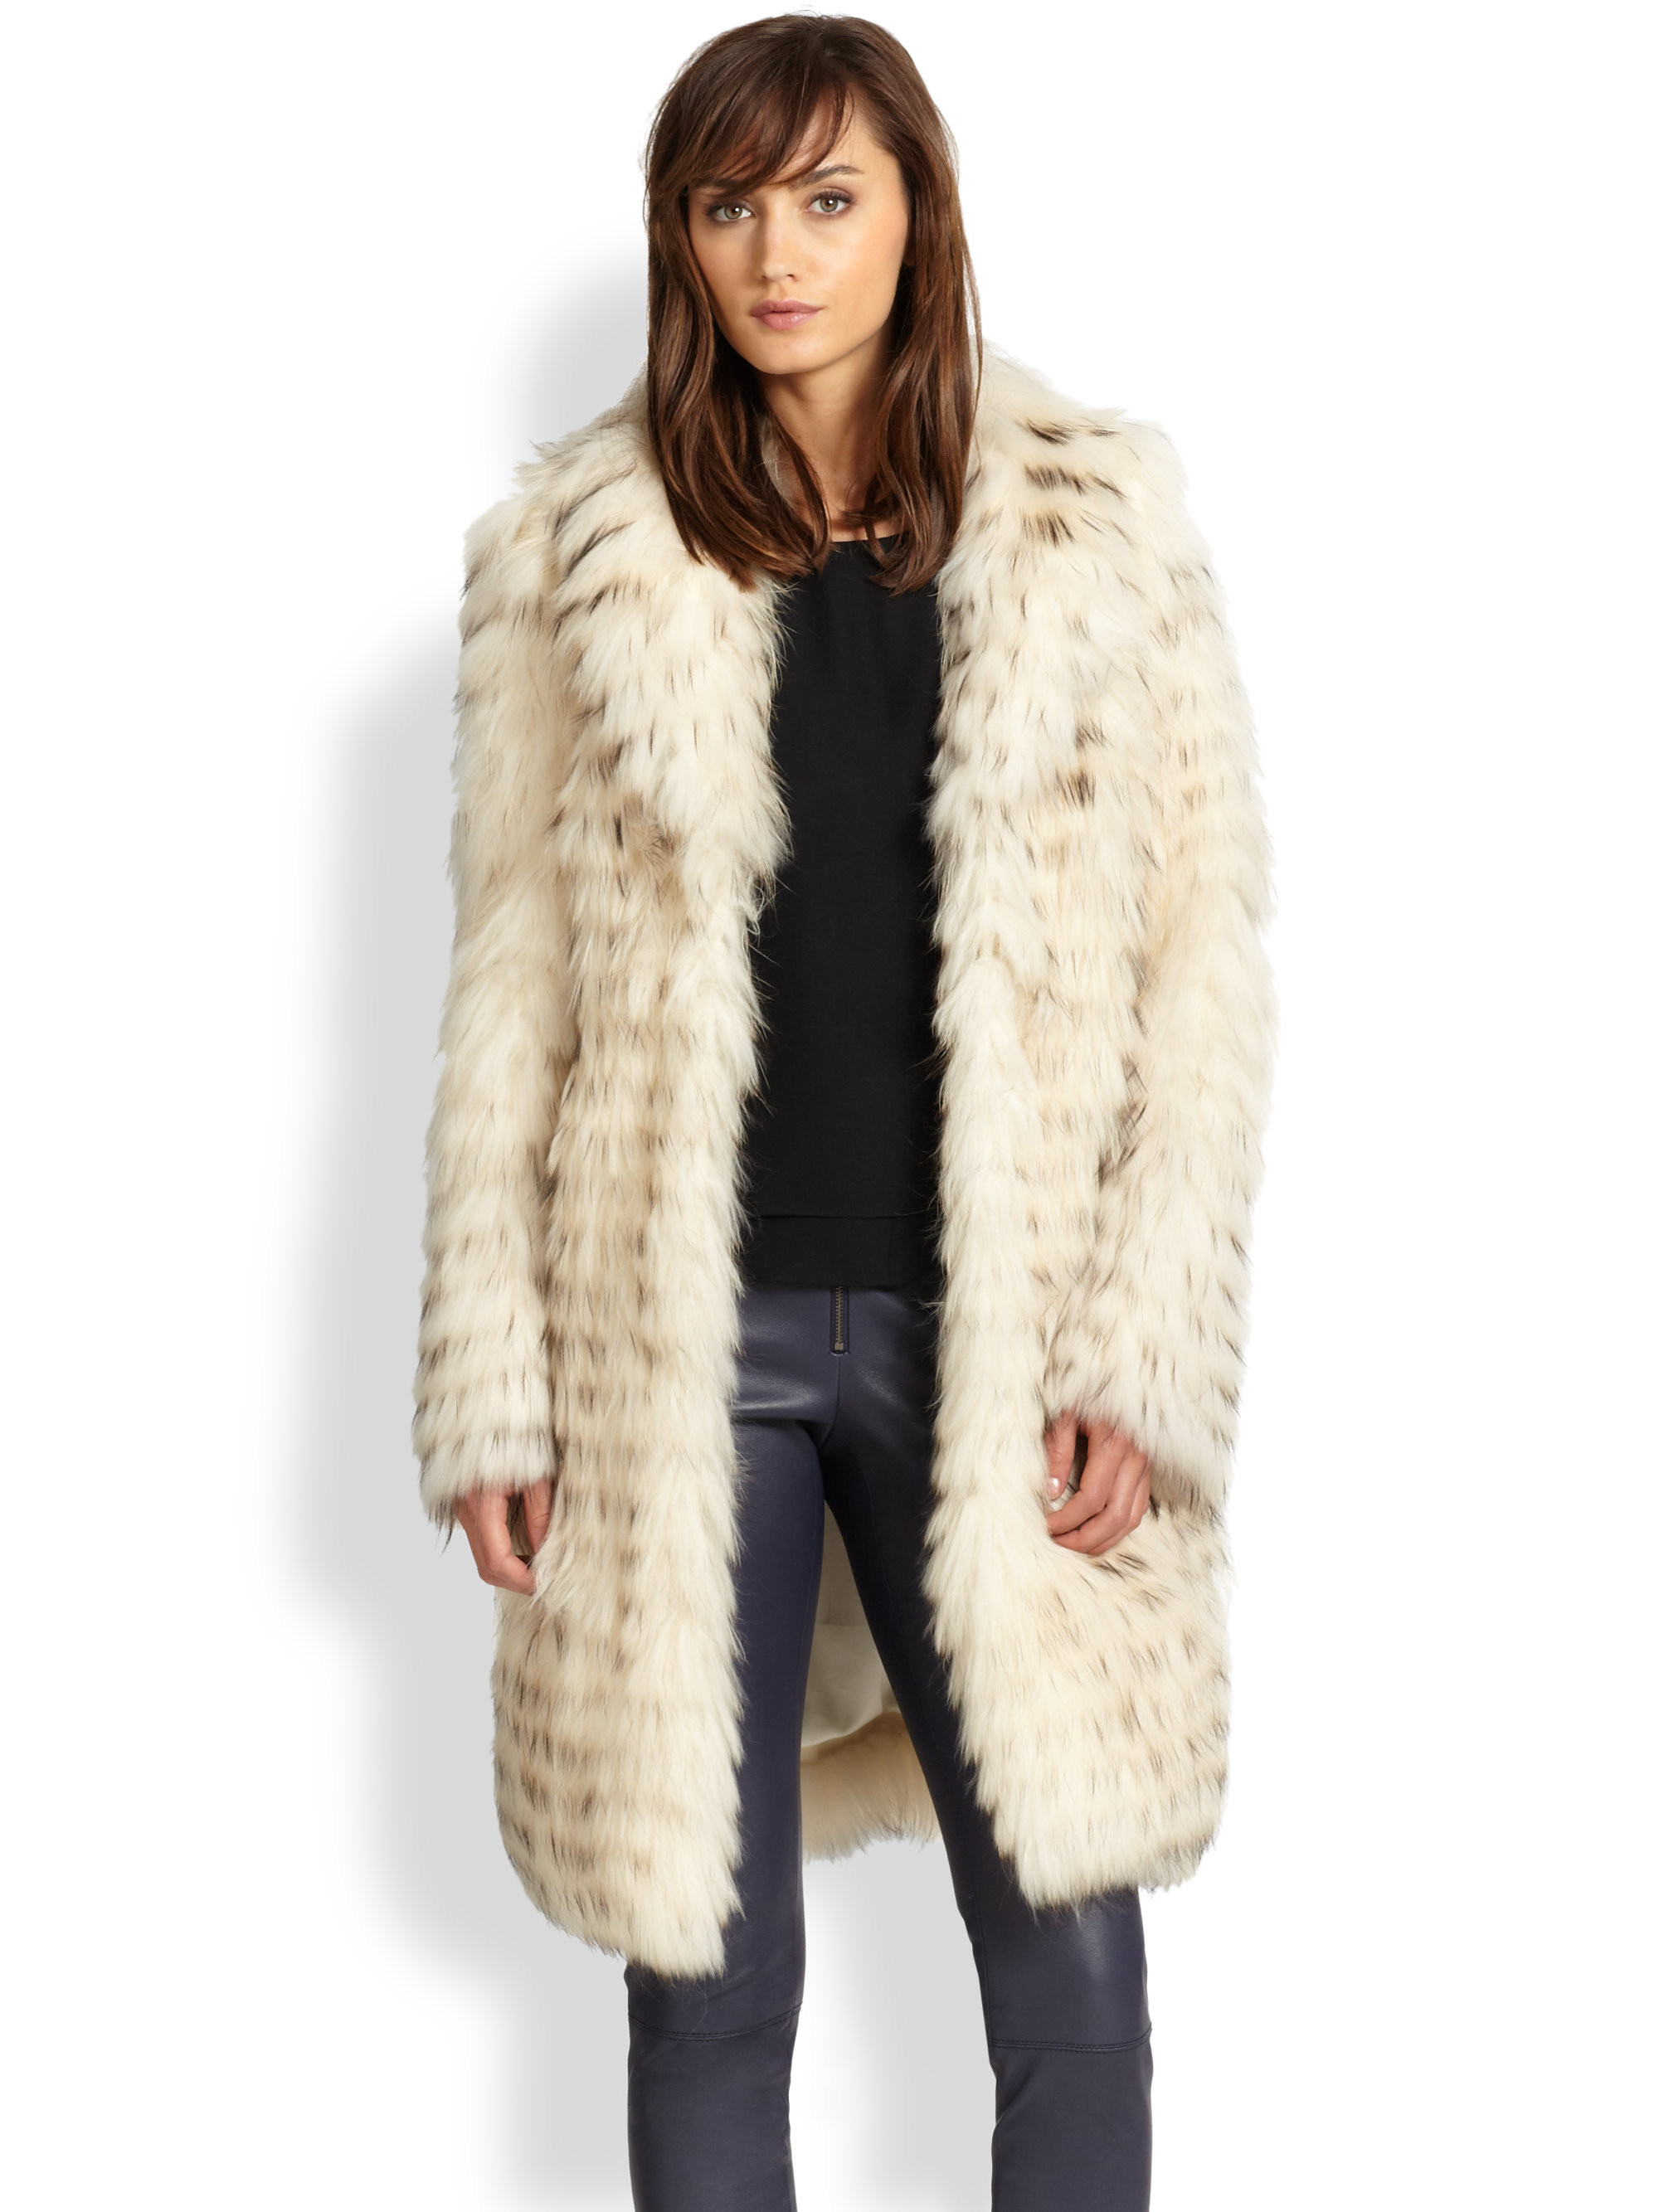 Find best value and selection for your Thick Warm Fur Coat Women With Fur Hat Fur Jacket Women Long Coat FurJacket Coat search on eBay. World's leading marketplace.